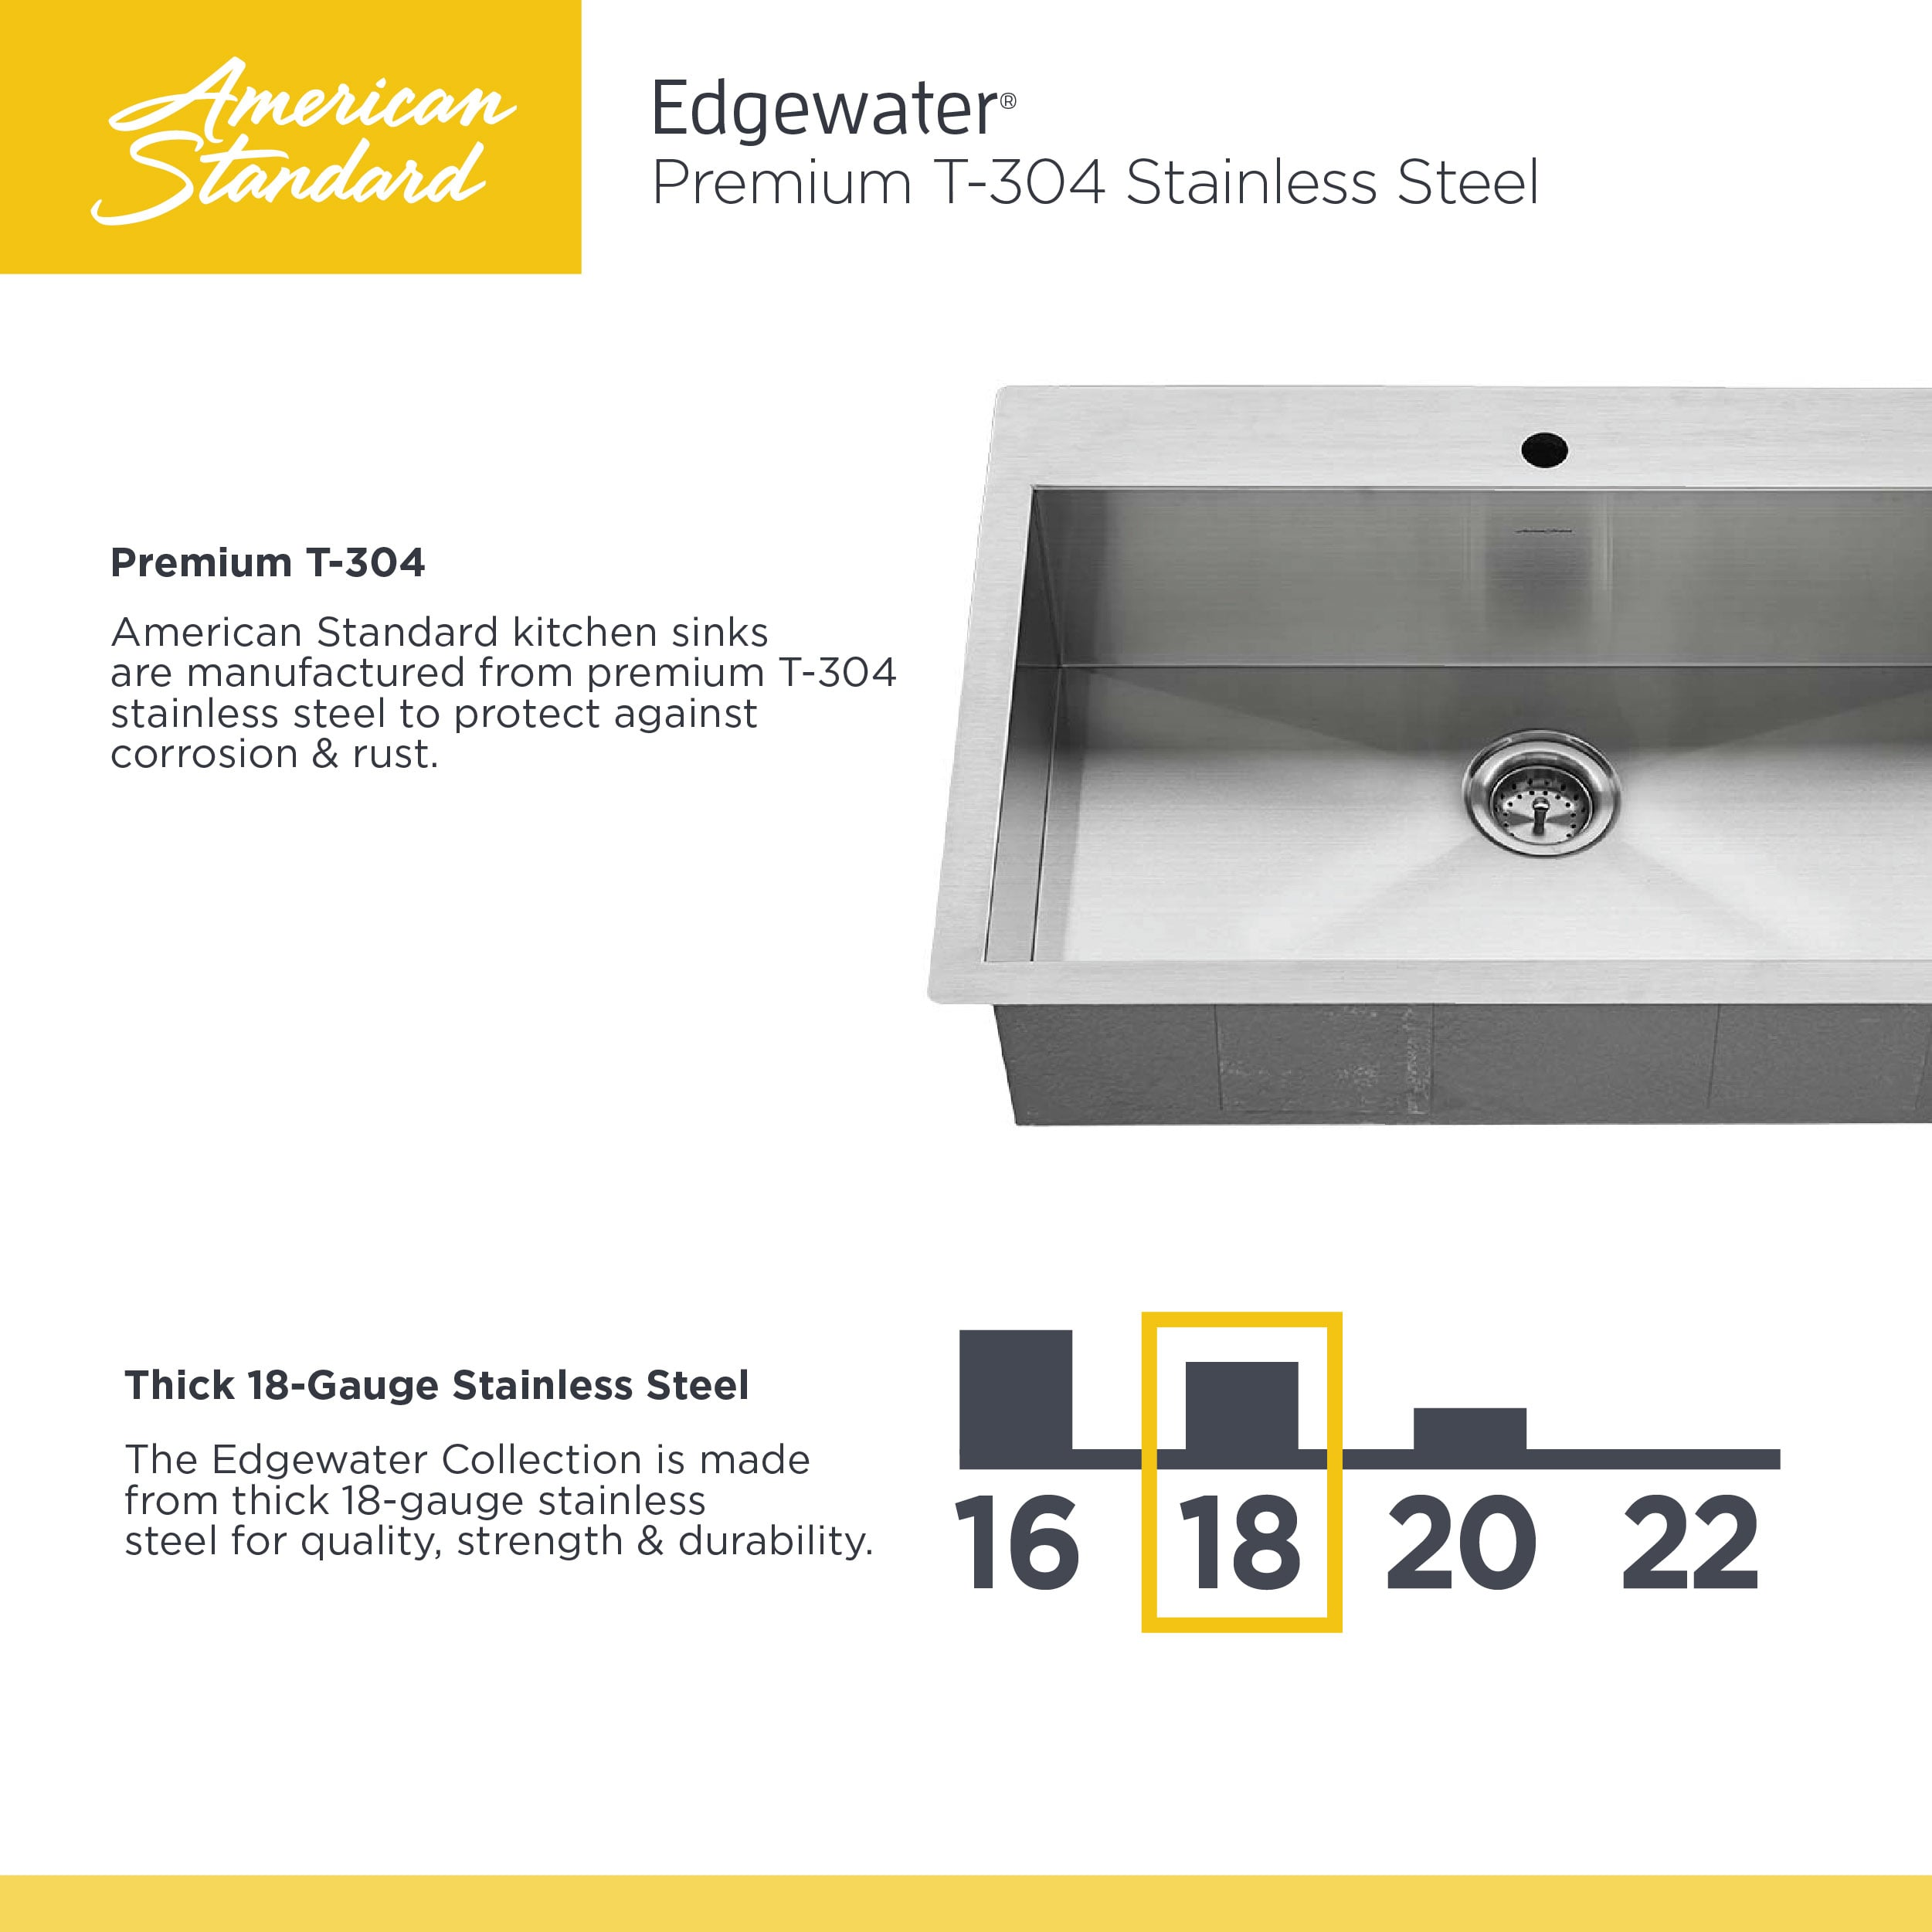 American Standard 18sb 9332211 075 Stainless Steel Edgewater 33 Single Basin Stainless Steel Kitchen Sink For Drop In Or Undermount Installations With Single Faucet Hole Drain Included Faucet Com